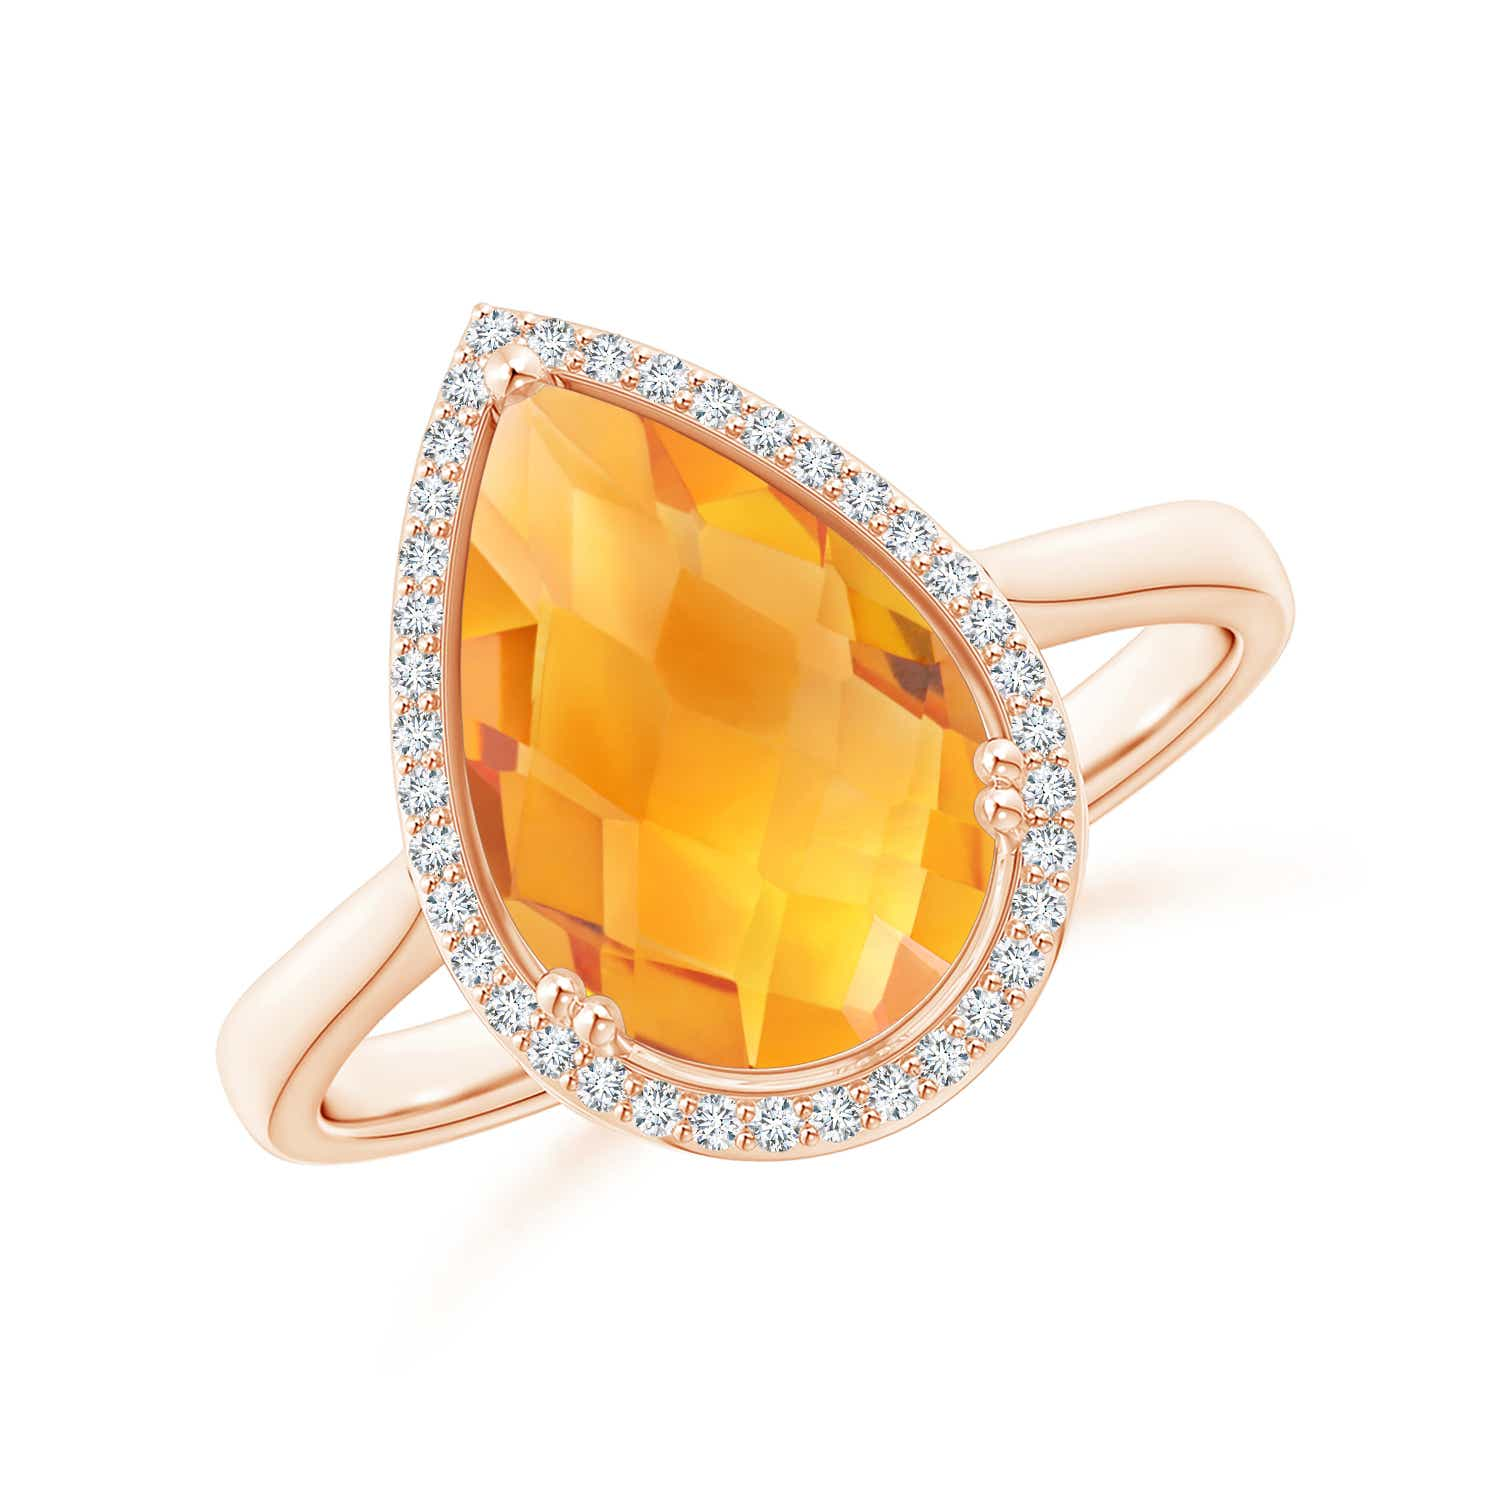 Angara Citrine Cocktail Engagement Ring in Yellow Gold CWQltcsP